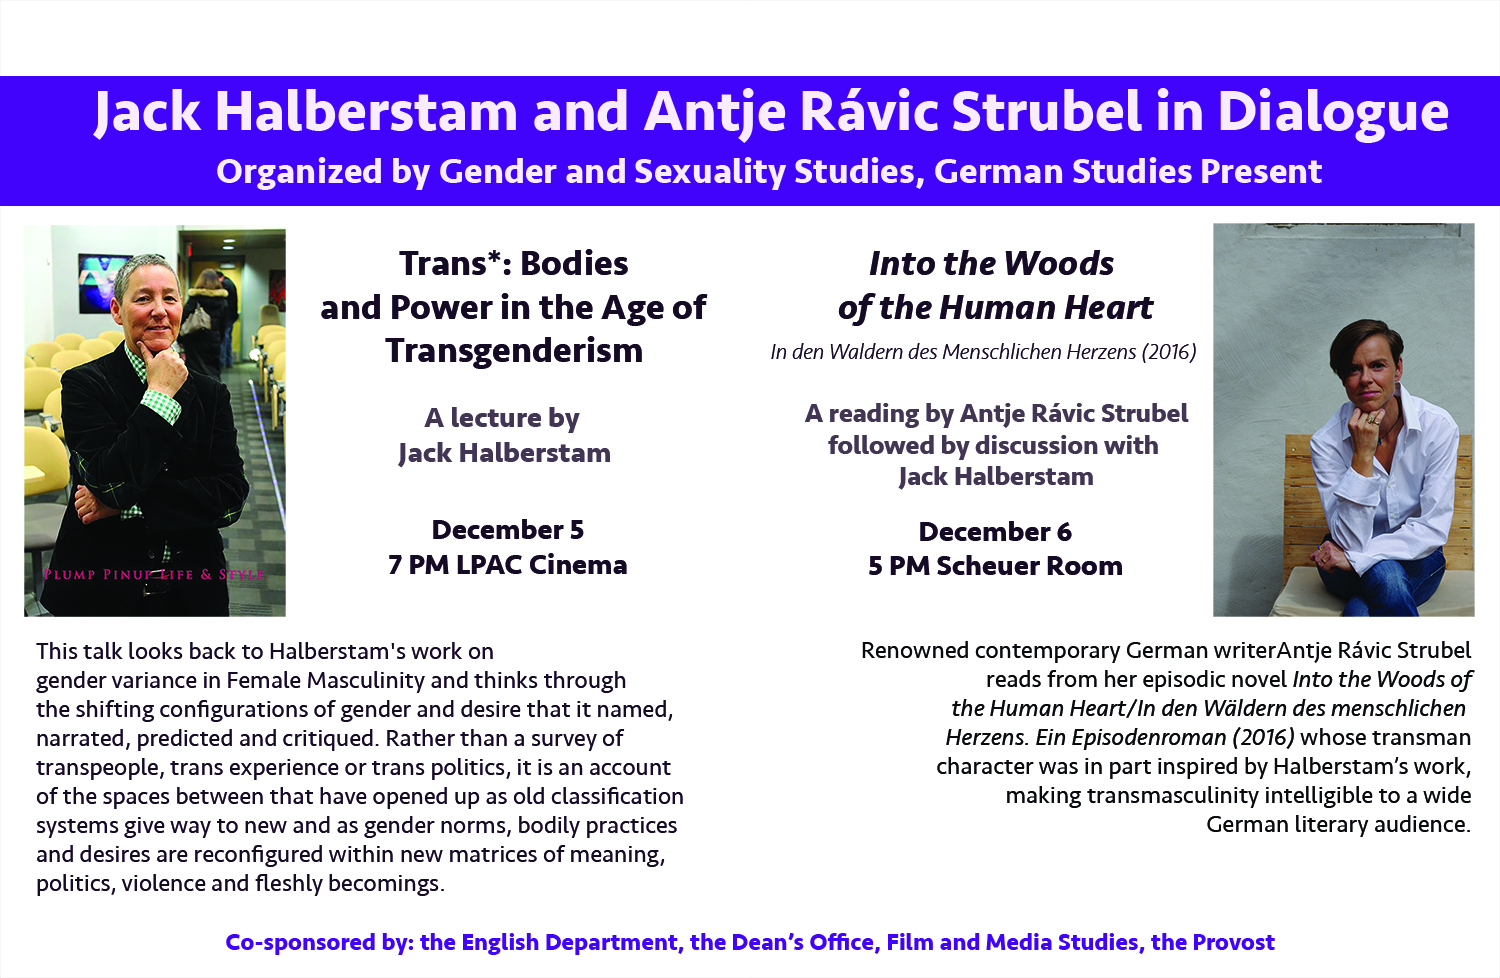 "Poster describing Halberstam and Strubel's respective events, with photos of each visiting lecturer. Halberstam is smiling and resting his chin on one hand. Strubel is sitting, smiling less, and also resting her chin on one hand. The text in the image describes Halberstam's past work in queer theory and his influence on Strubel's most recent book, ""Into the Woods of the Human Heart."""